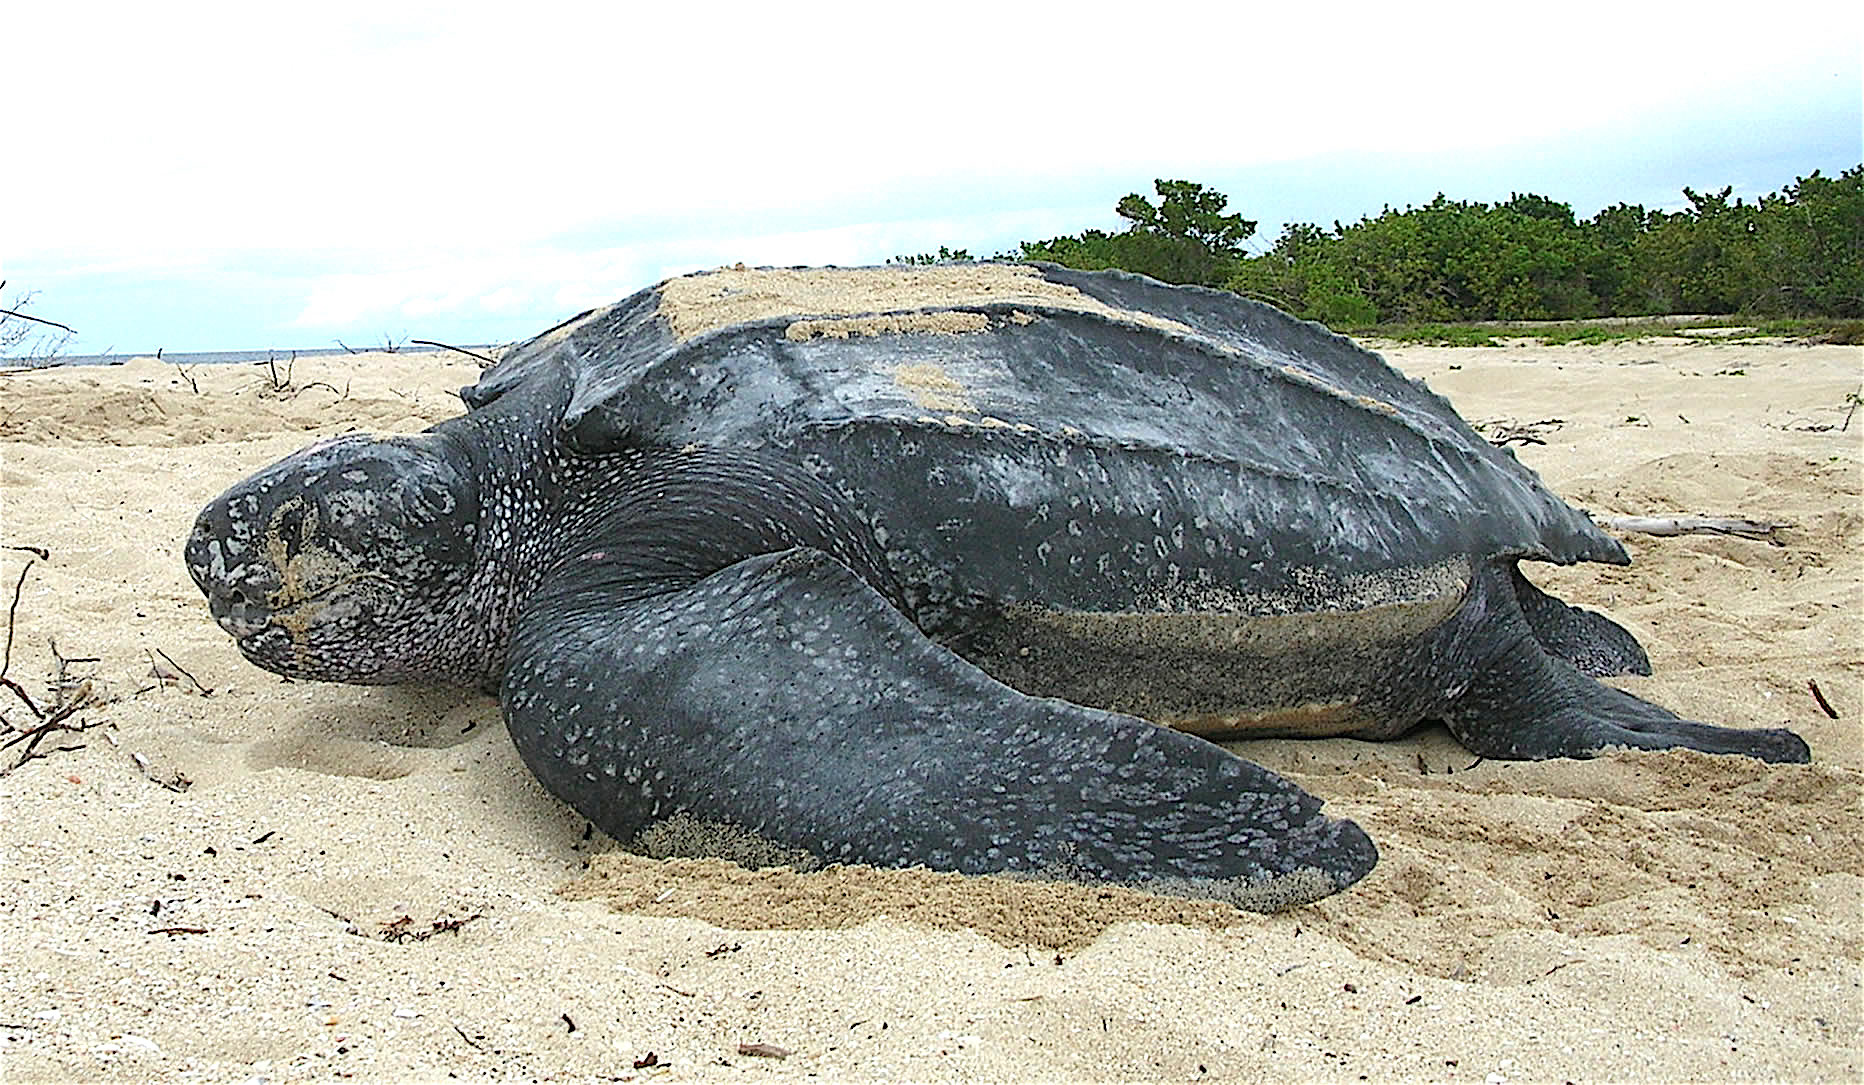 The biggest turtle in the world: photo 47